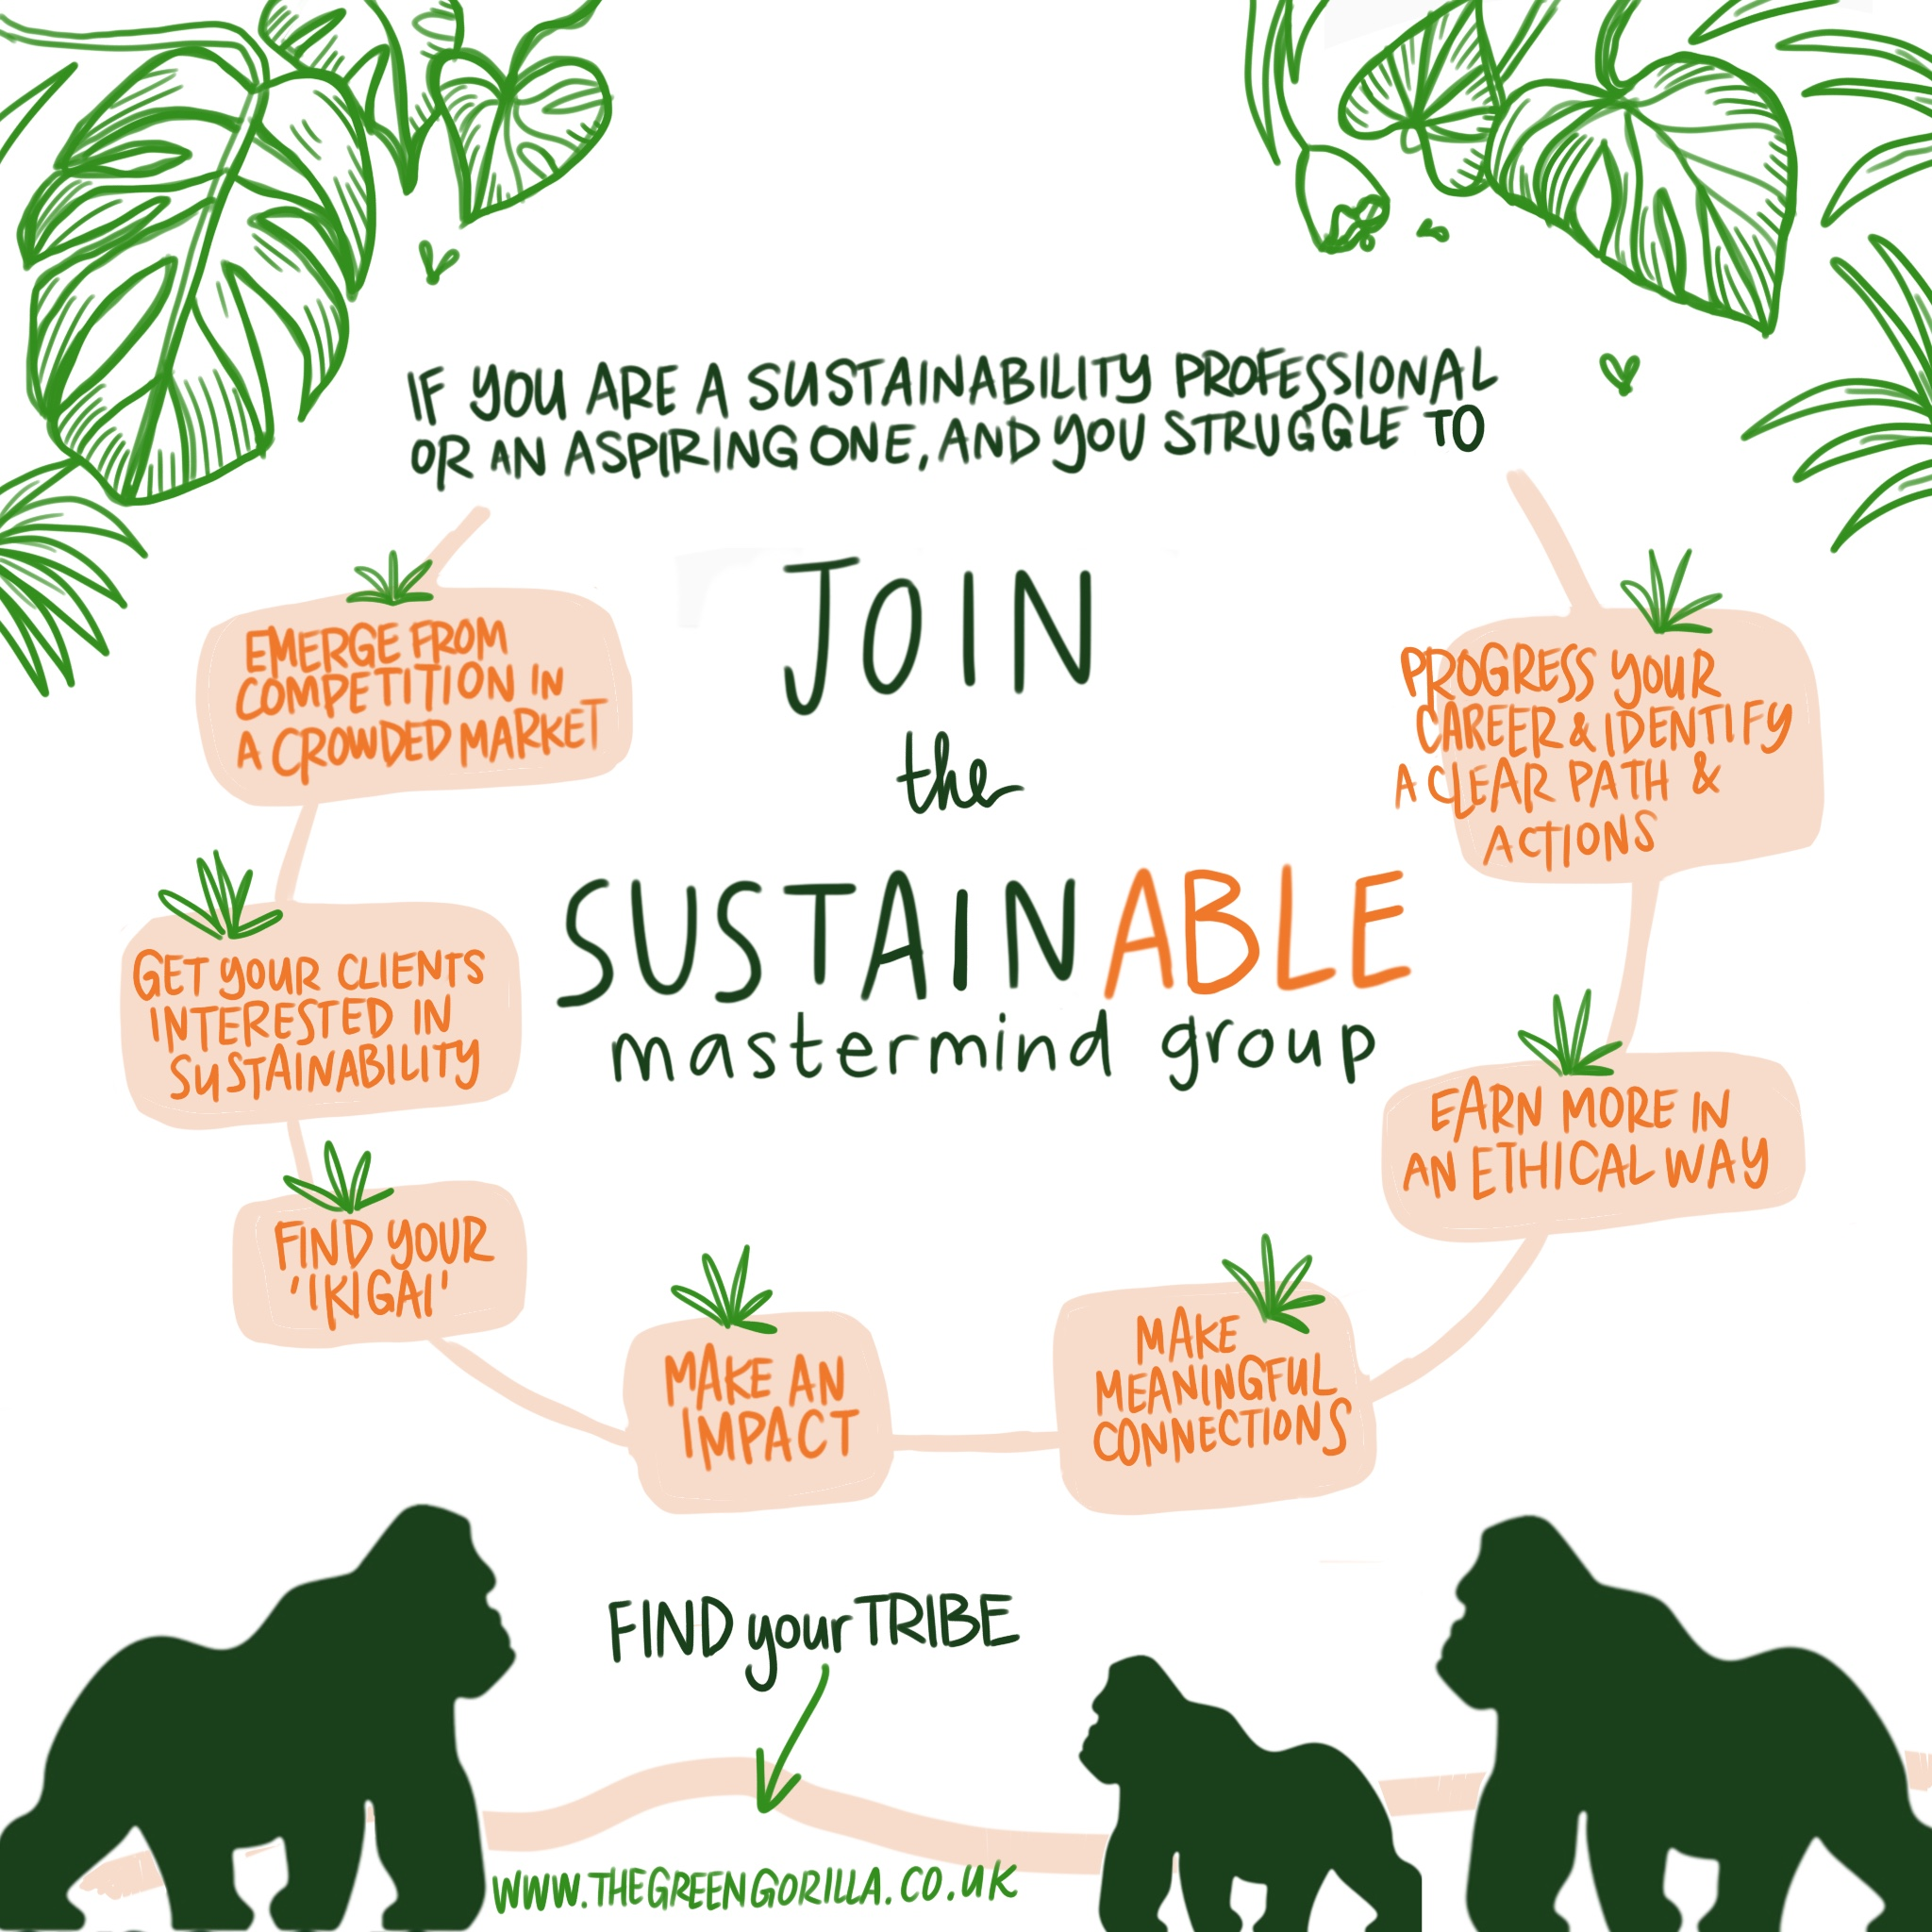 Your Invitation to Join the SustainABLE Mastermind